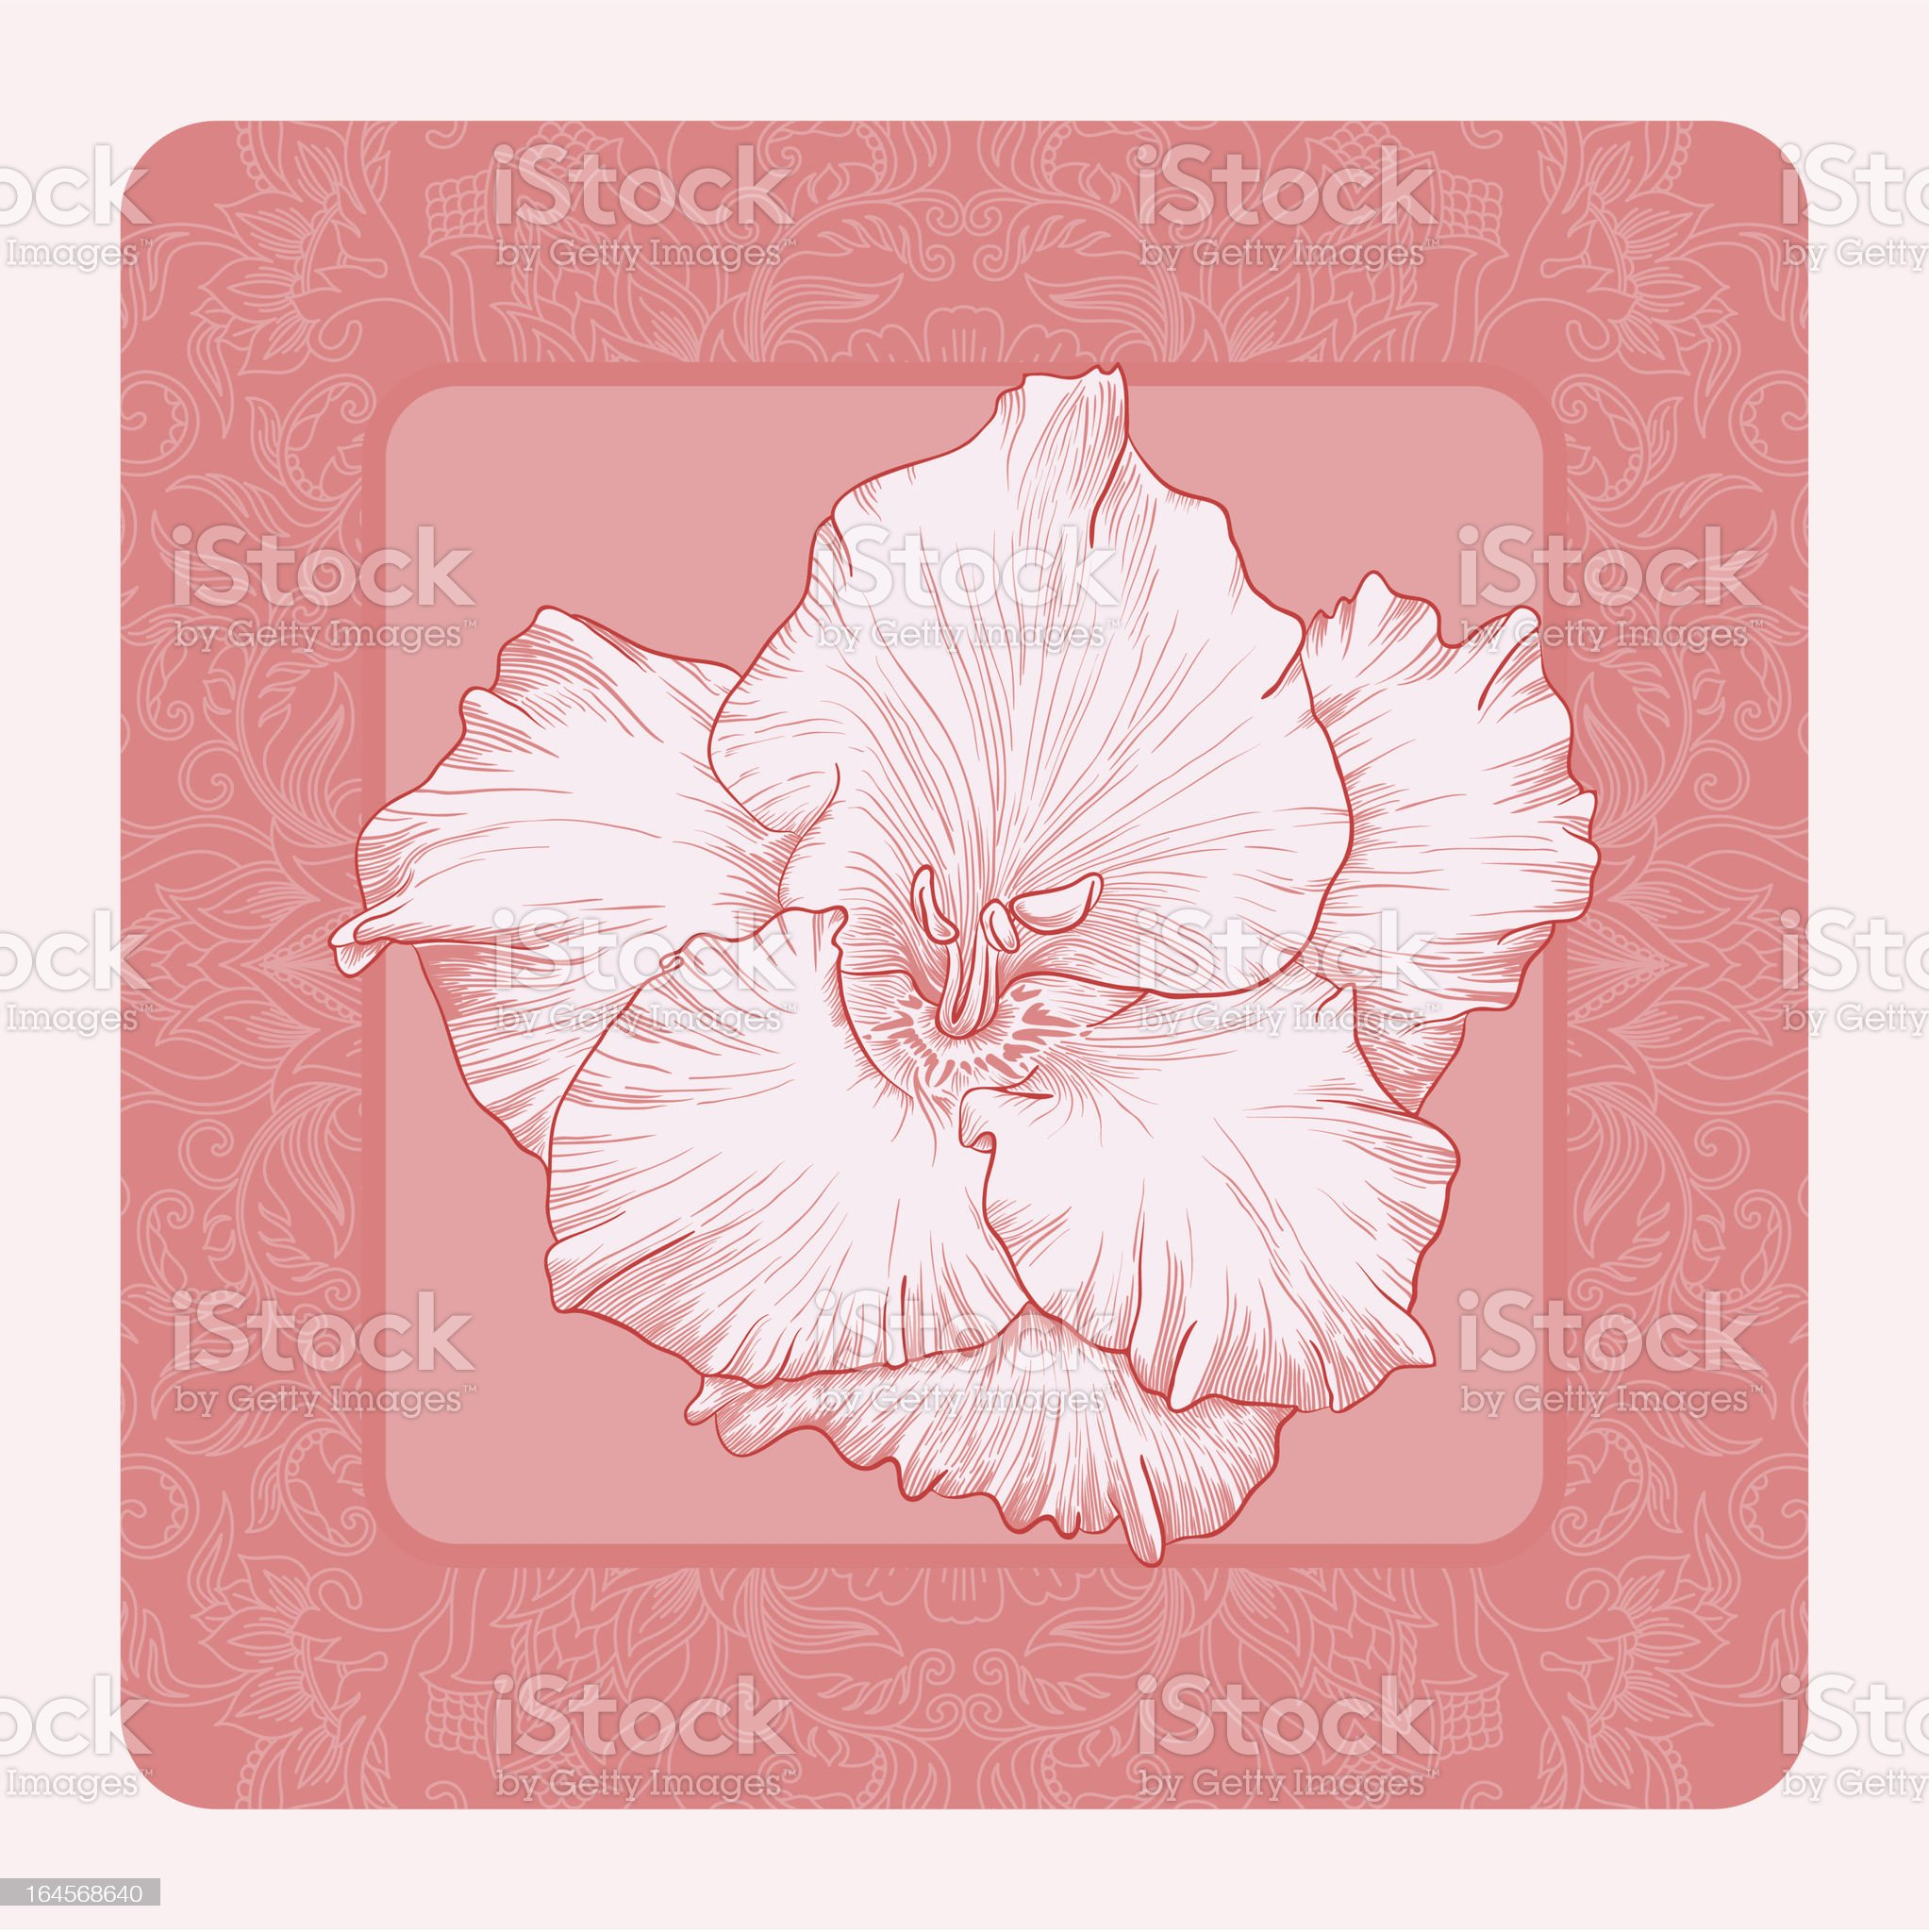 Vector illustration for greeting card with gladiolus. royalty-free stock vector art